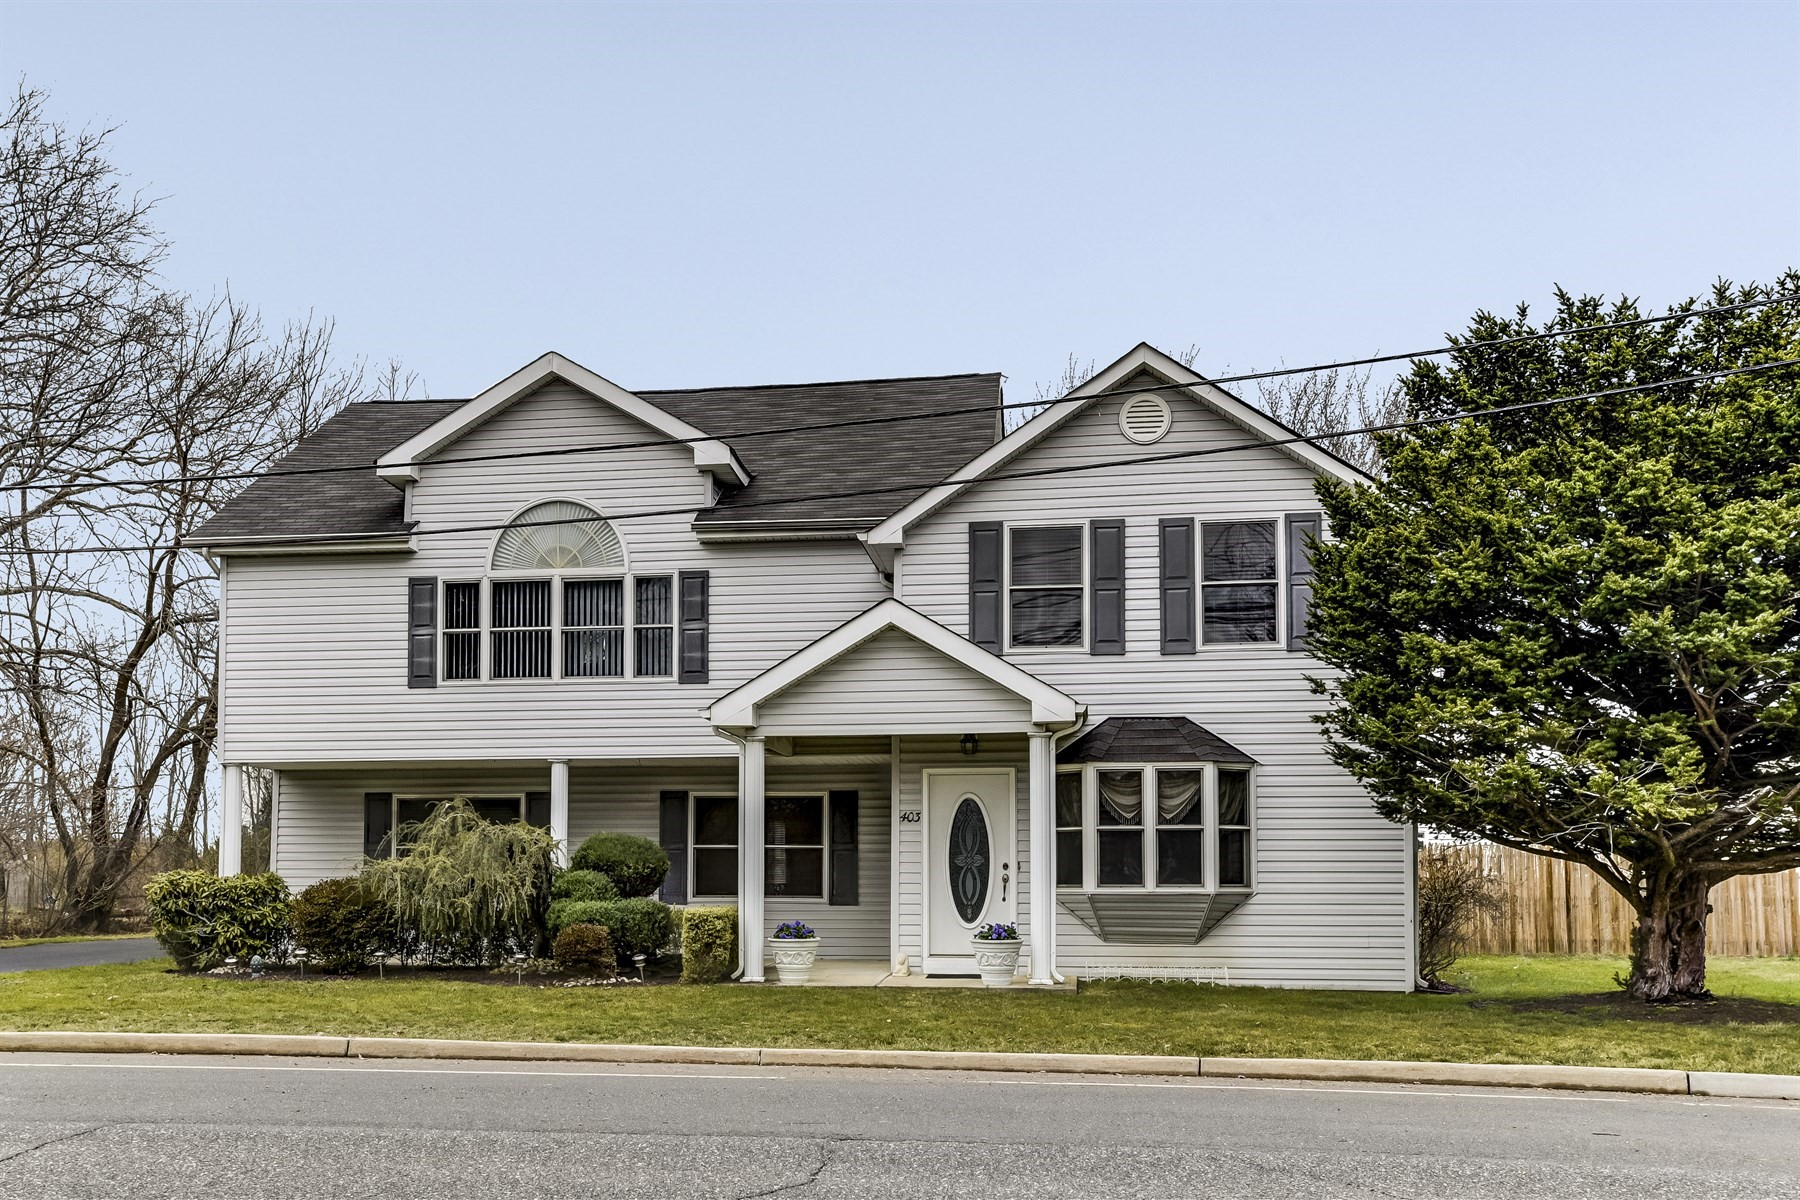 Single Family Home for Sale at Where your home reflects your style 403 E. Freehold Road Freehold, New Jersey, 07728 United States